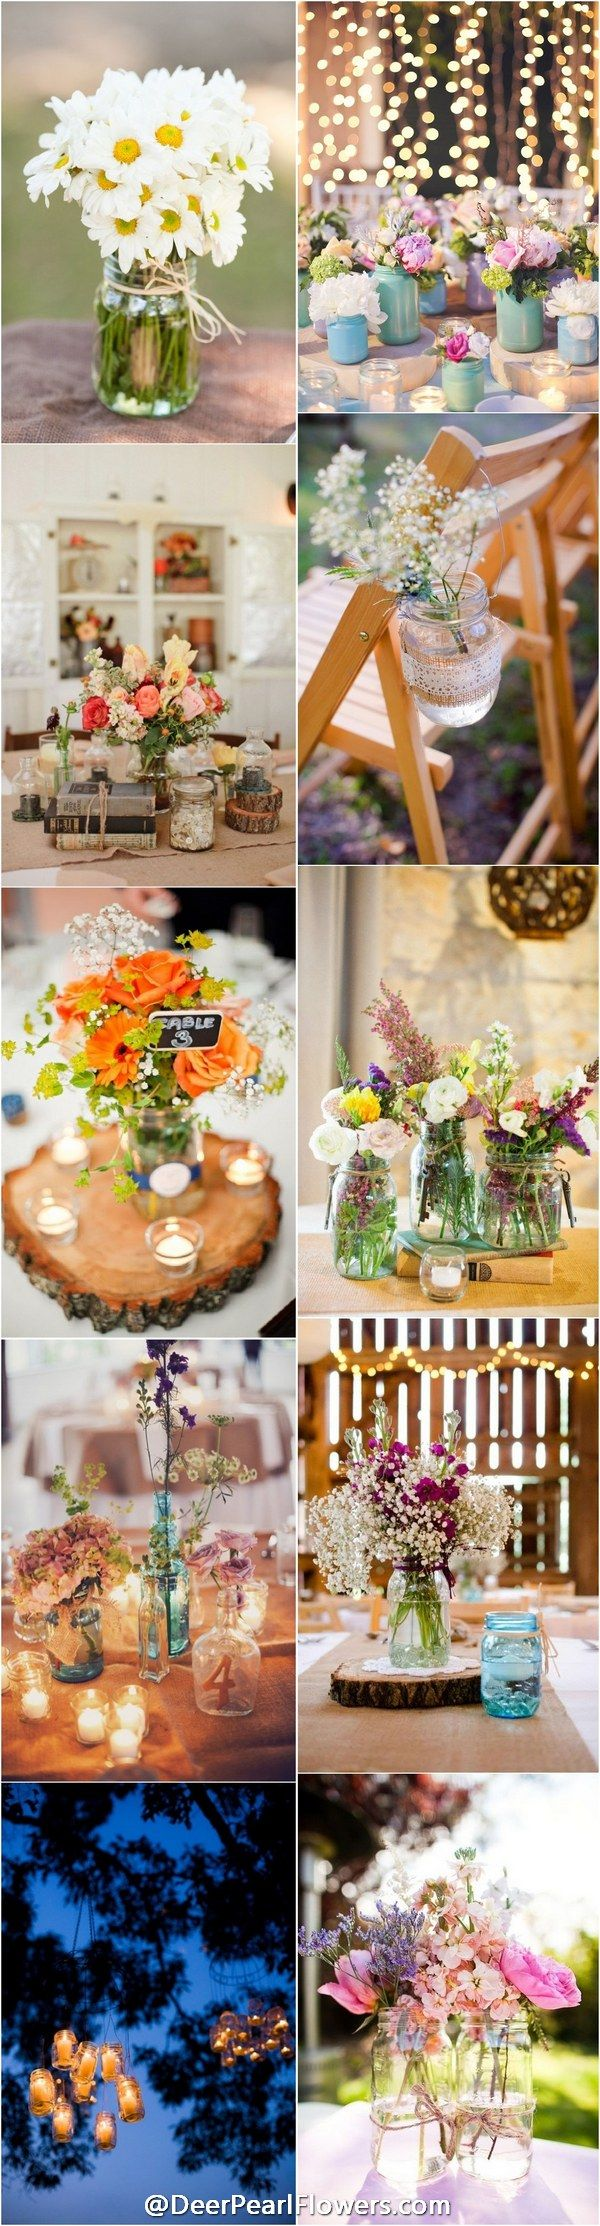 Rustic country wedding ideas - Rustic Mason Jar Wedding Ideas / http://www.deerpearlflowers.com/cheap-mason-jar-wedding-ideas/